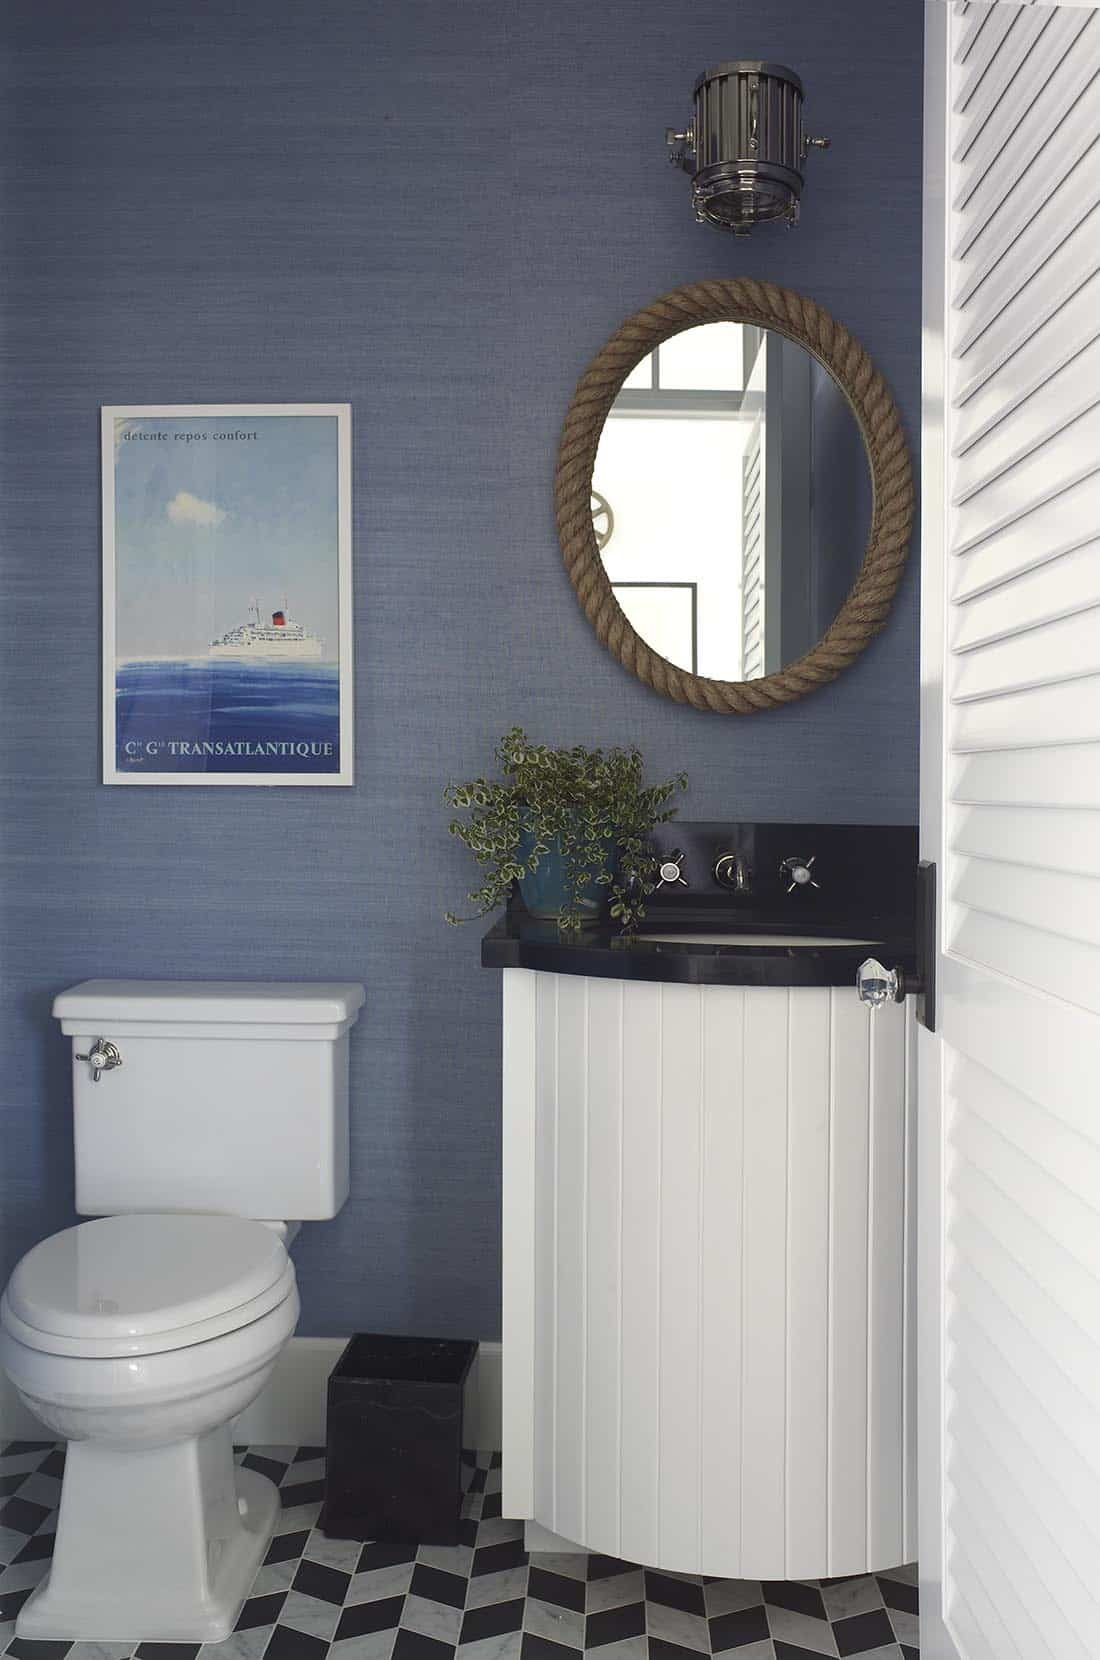 Burnham Designs Navy Blue White Bathroom With Nautical Accent Decor